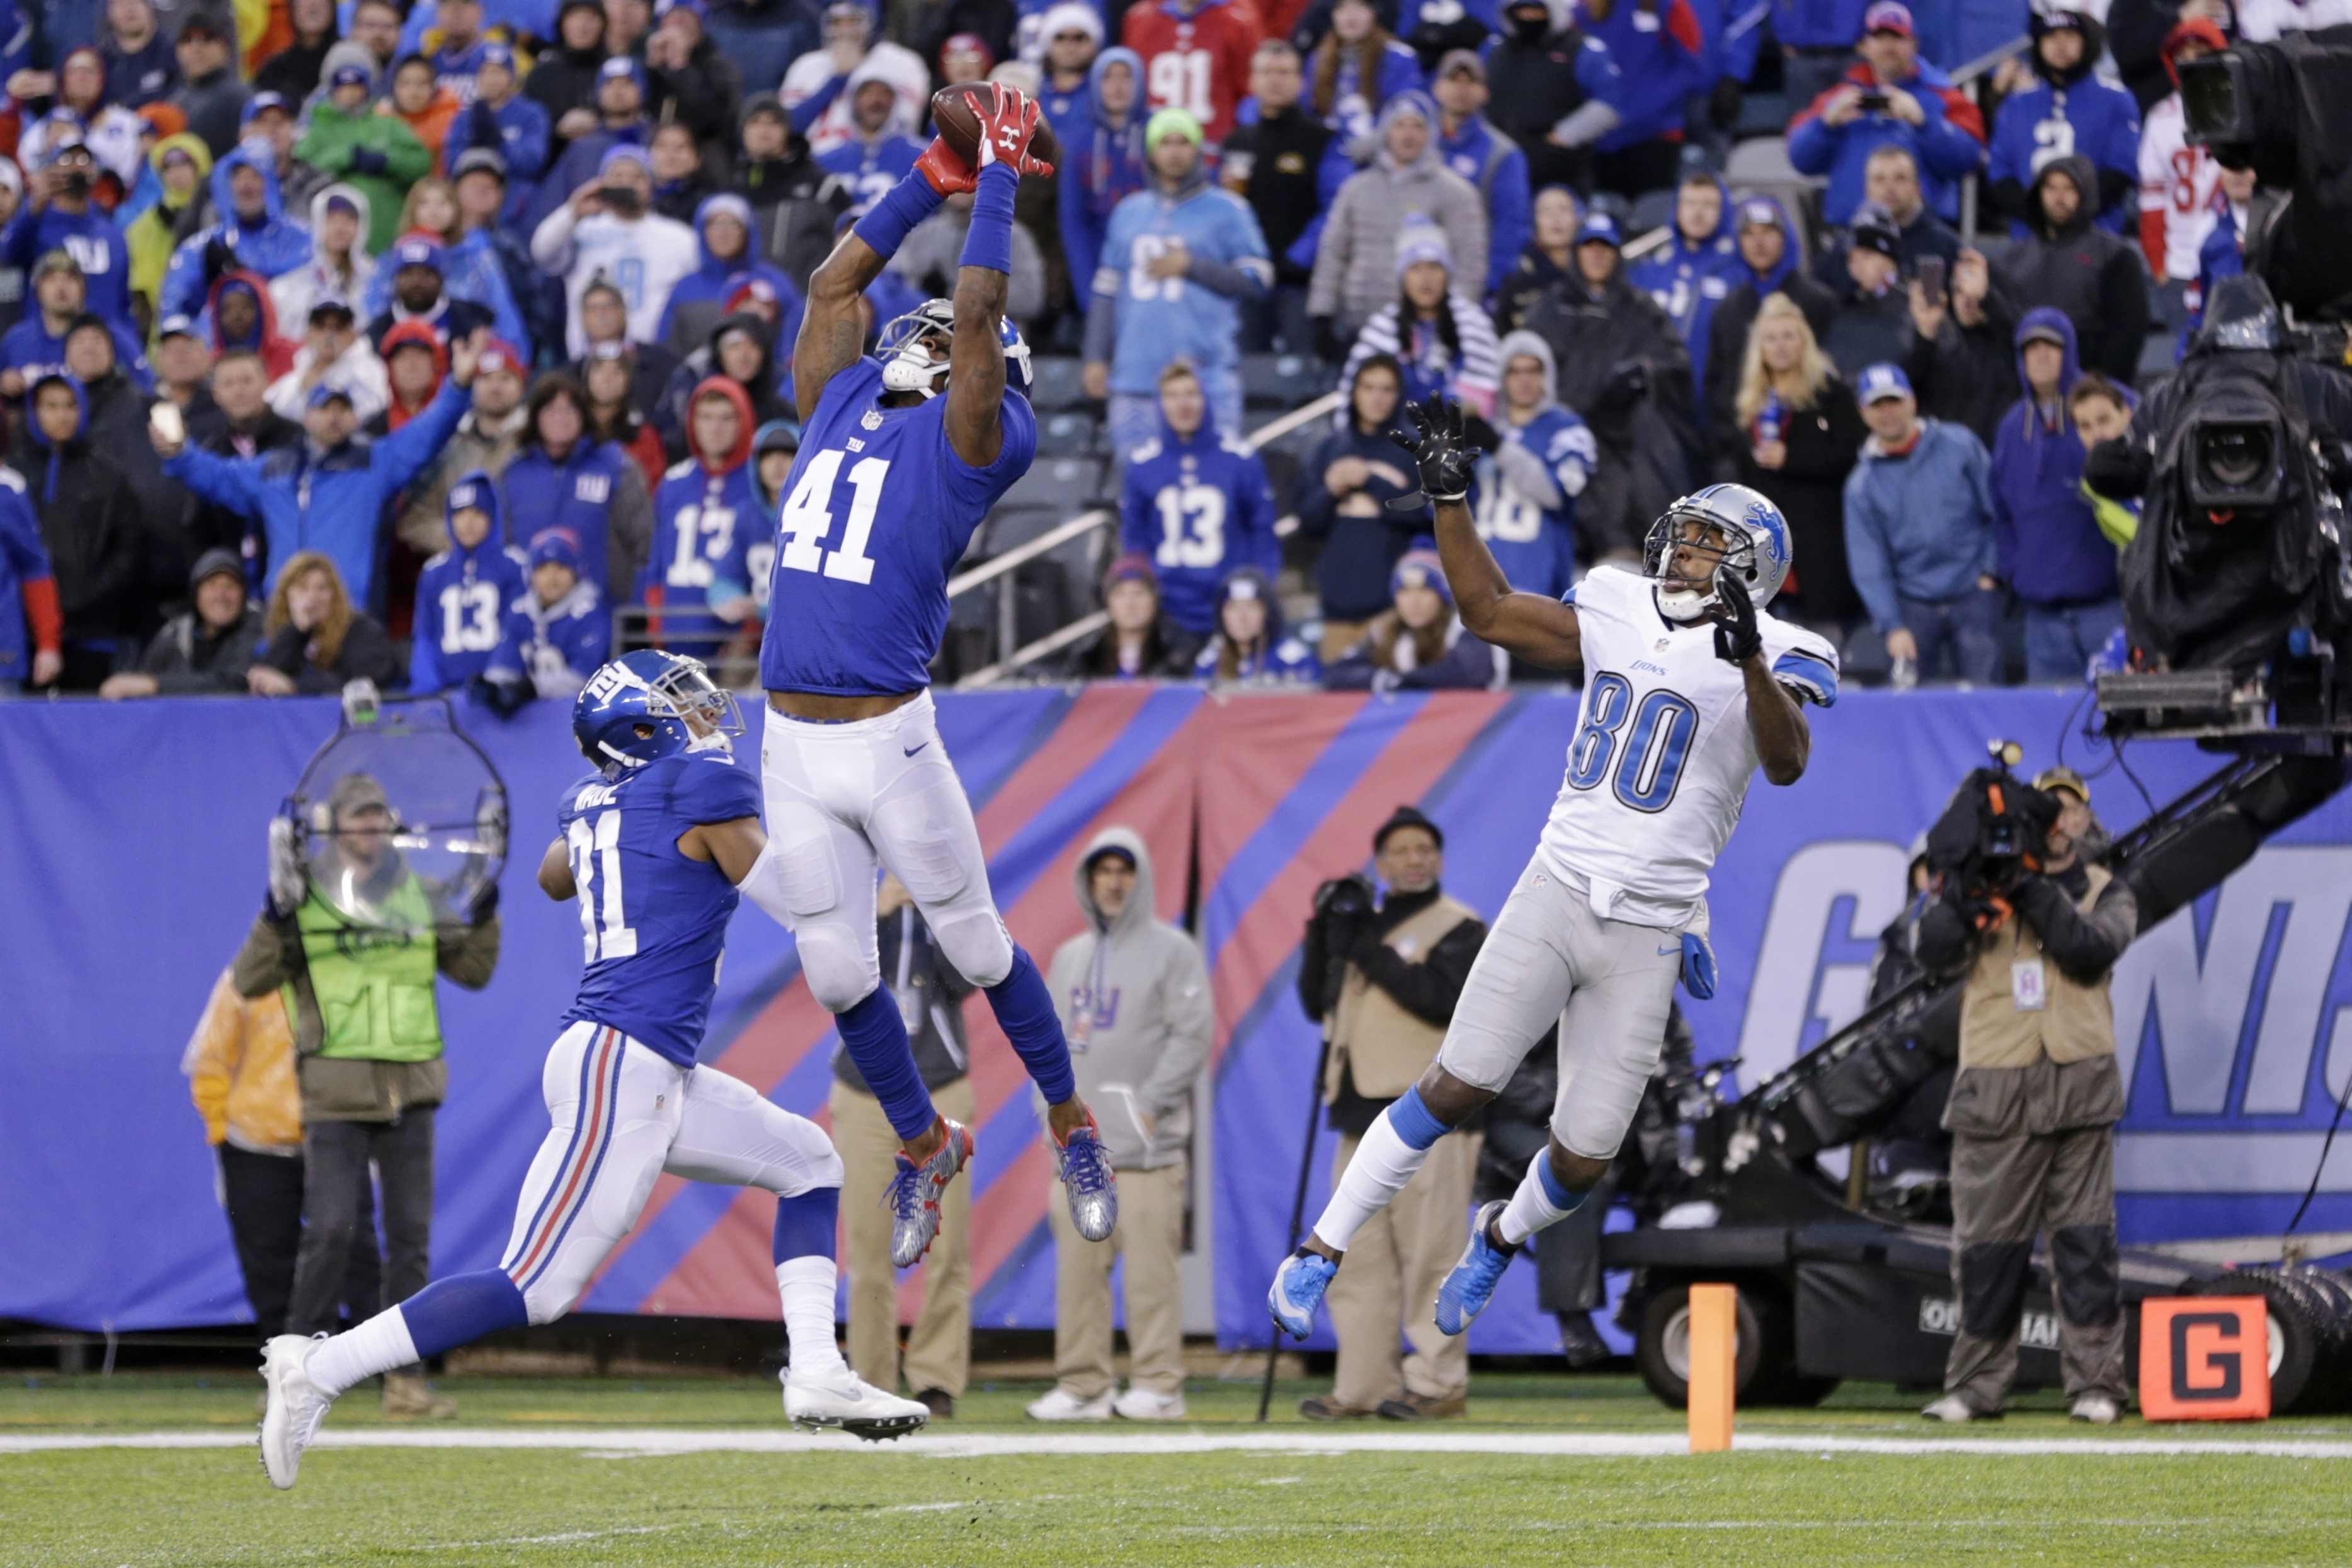 New York Giants cornerback Dominique Rodgers-Cromartie (41) intercepts a pass to Detroit Lions' Anquan Boldin (80) during the second half of an NFL football game Sunday, Dec. 18, 2016, in East Rutherford, N.J. The Giants won 17-6. (AP Photo/Seth Wenig)